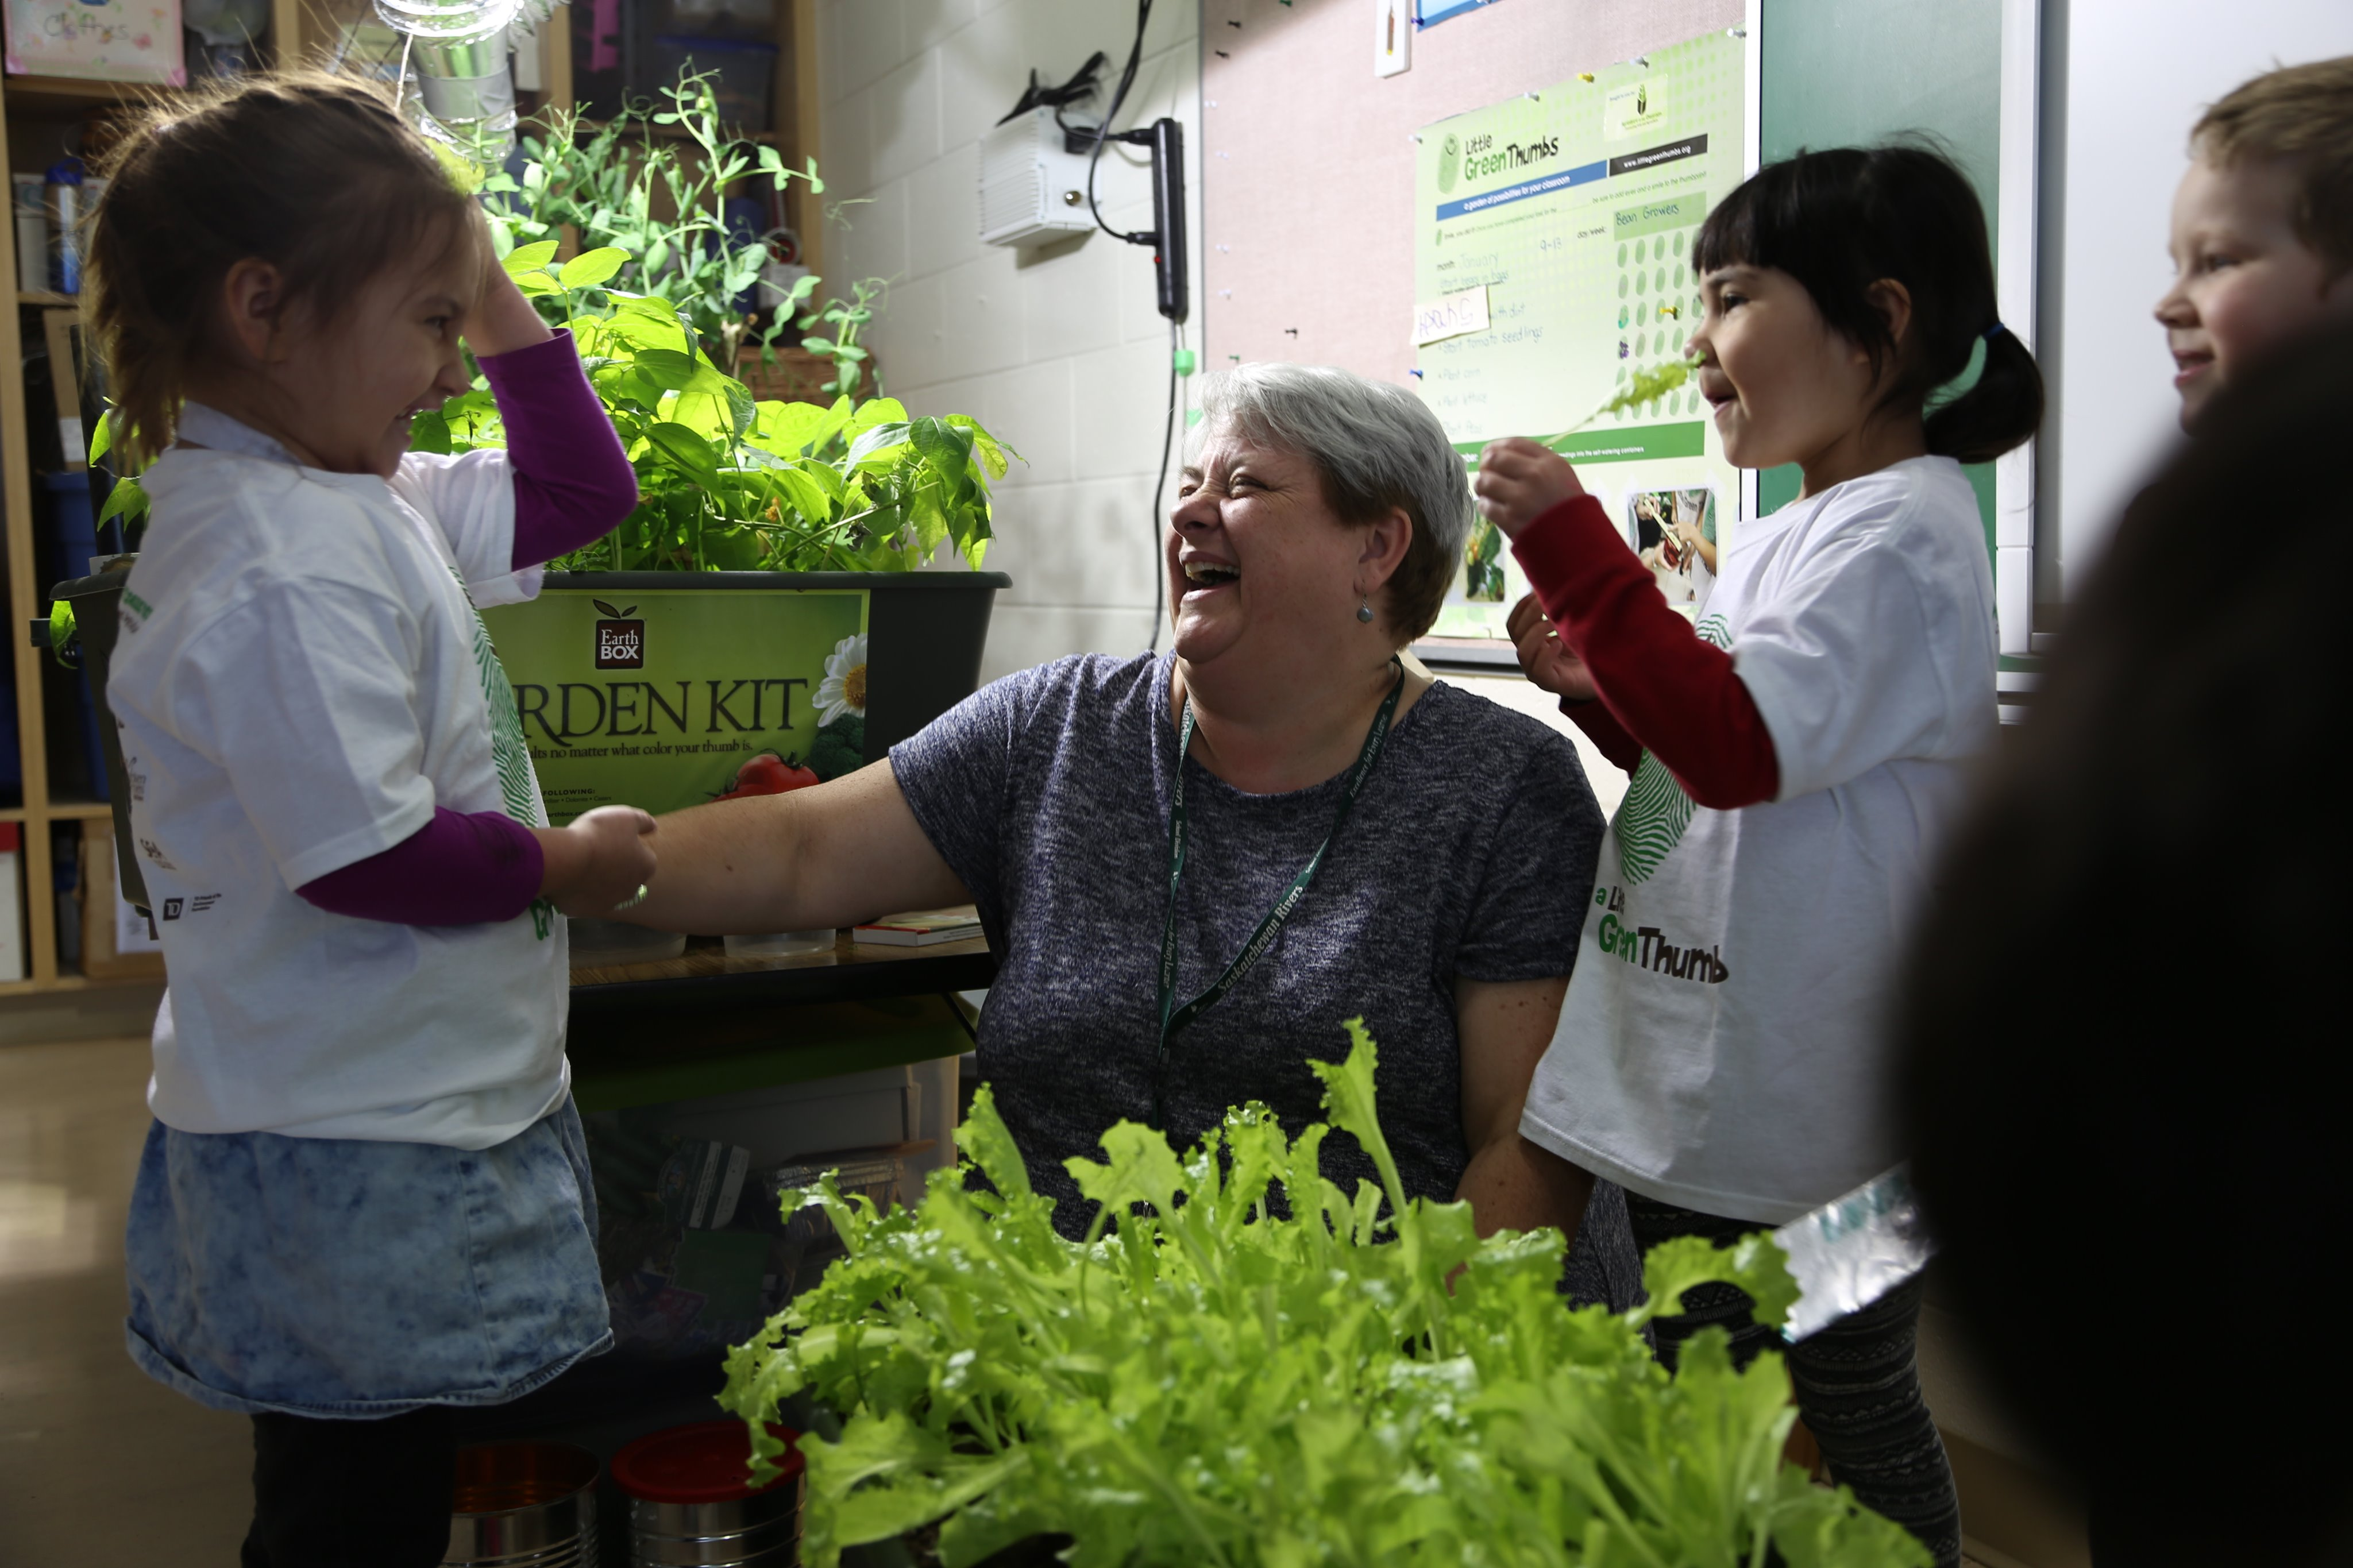 Social and emotional wellbeing: Gardens can Help!